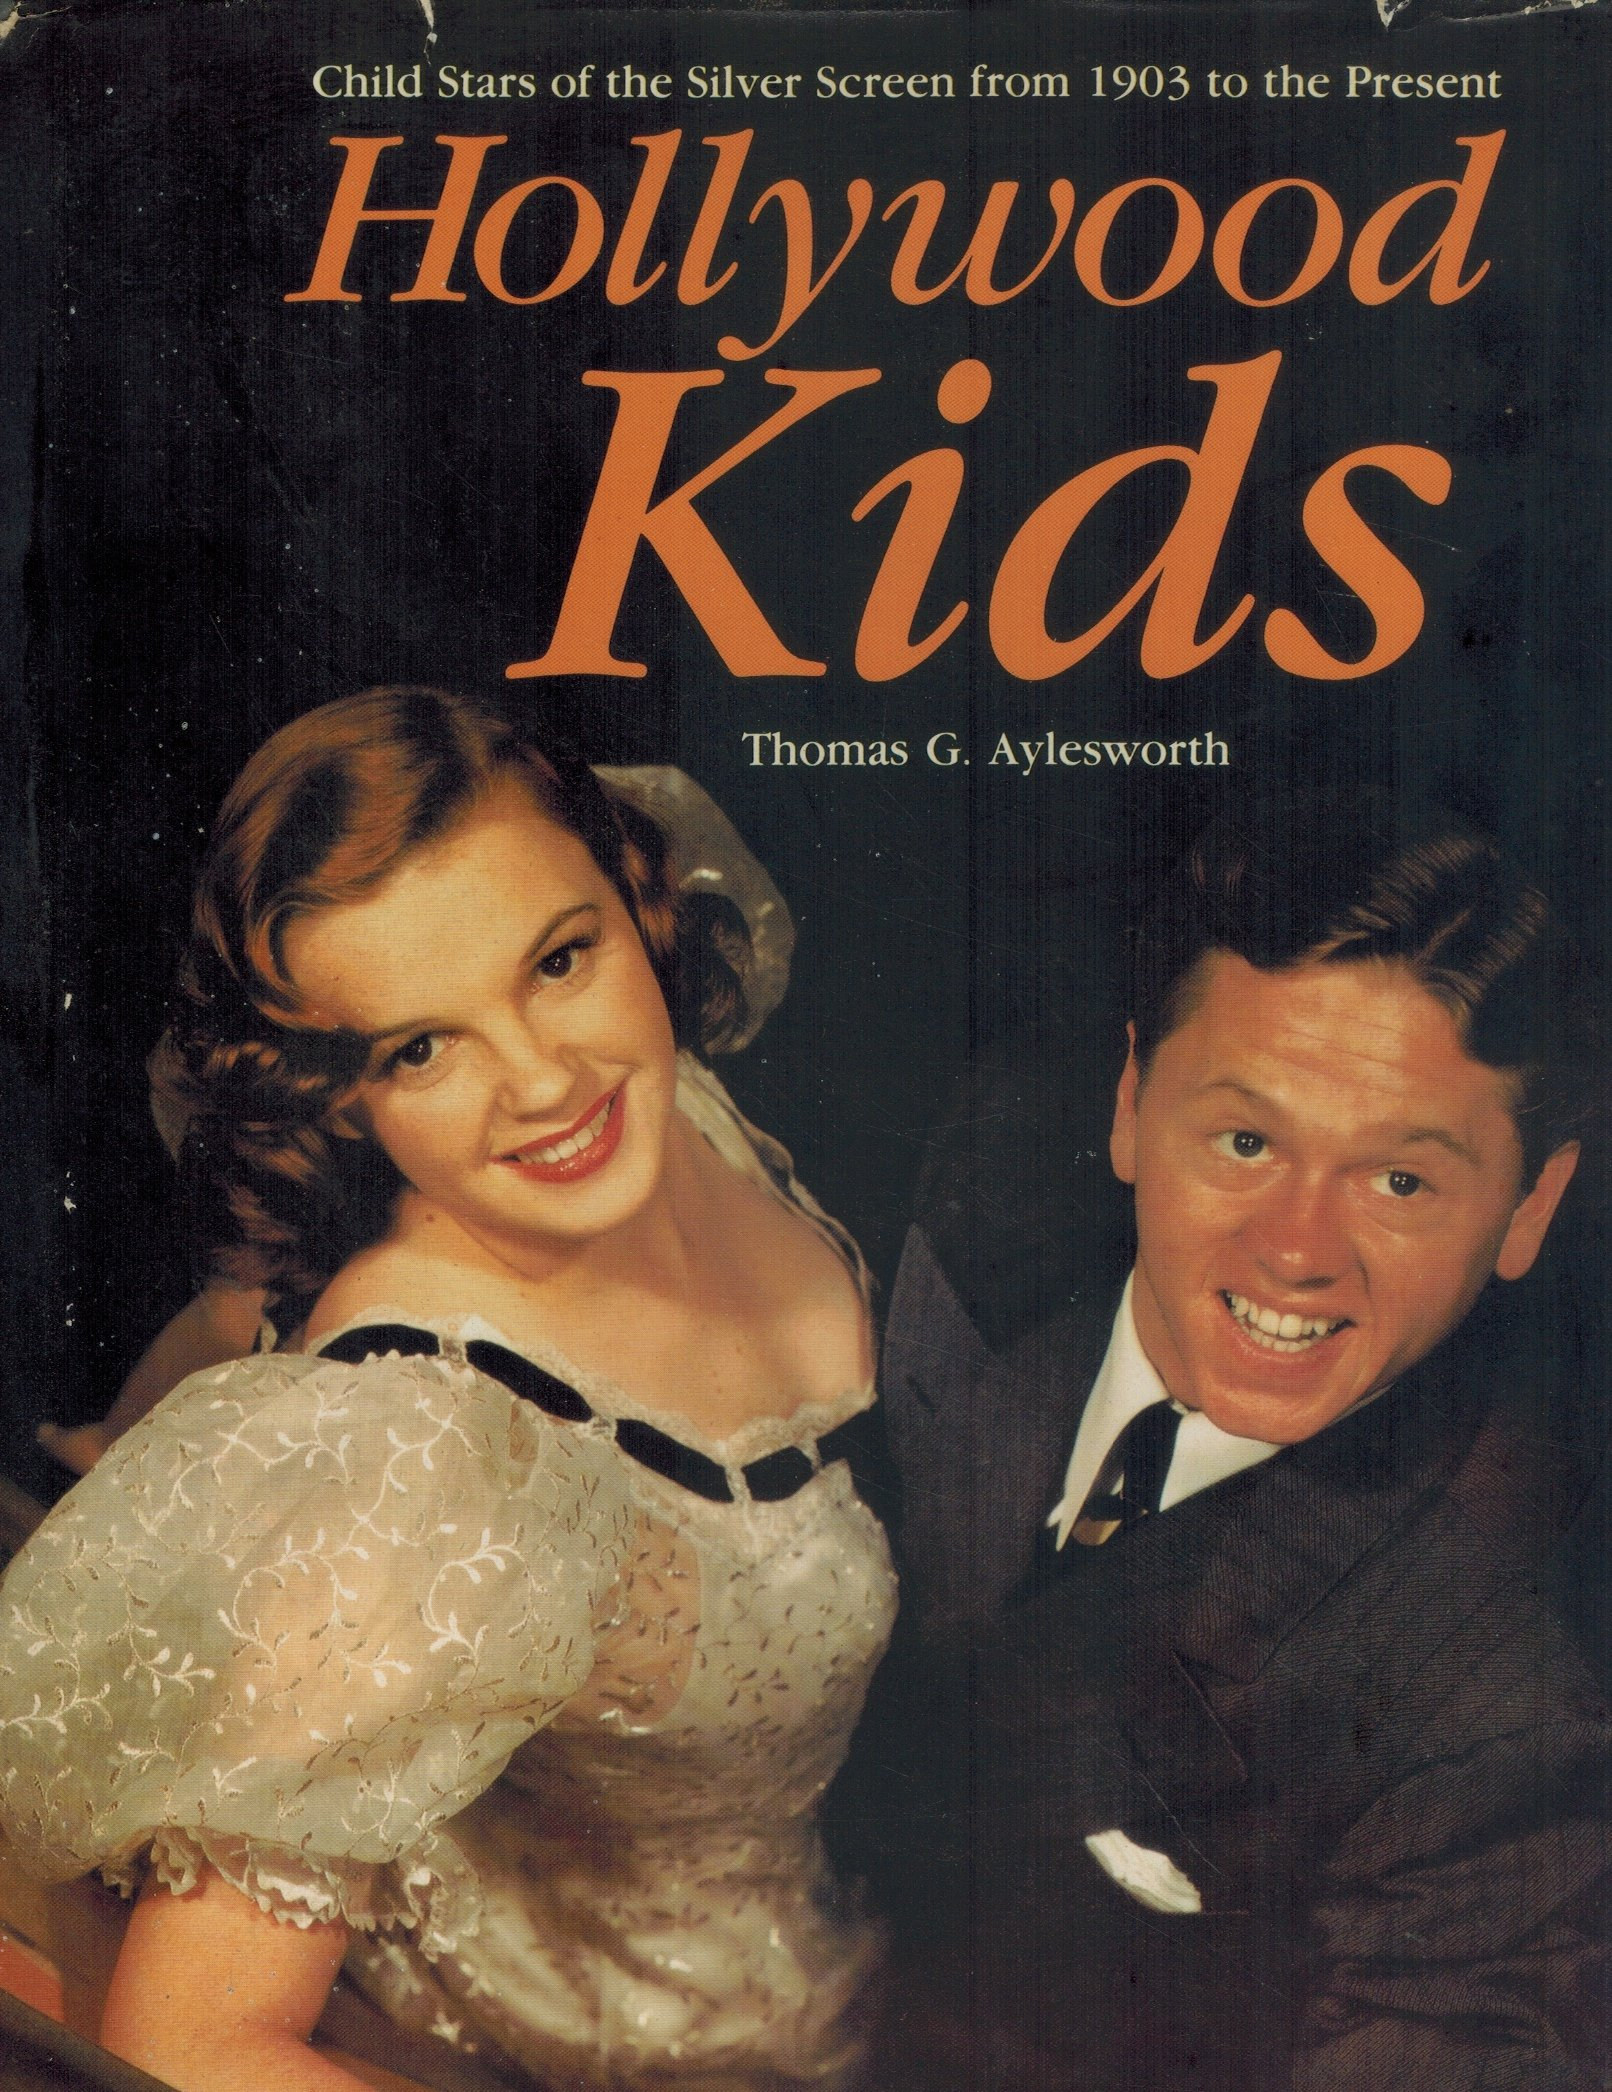 Hollywood Kids: Child Stars of the Silver Screen from 1903